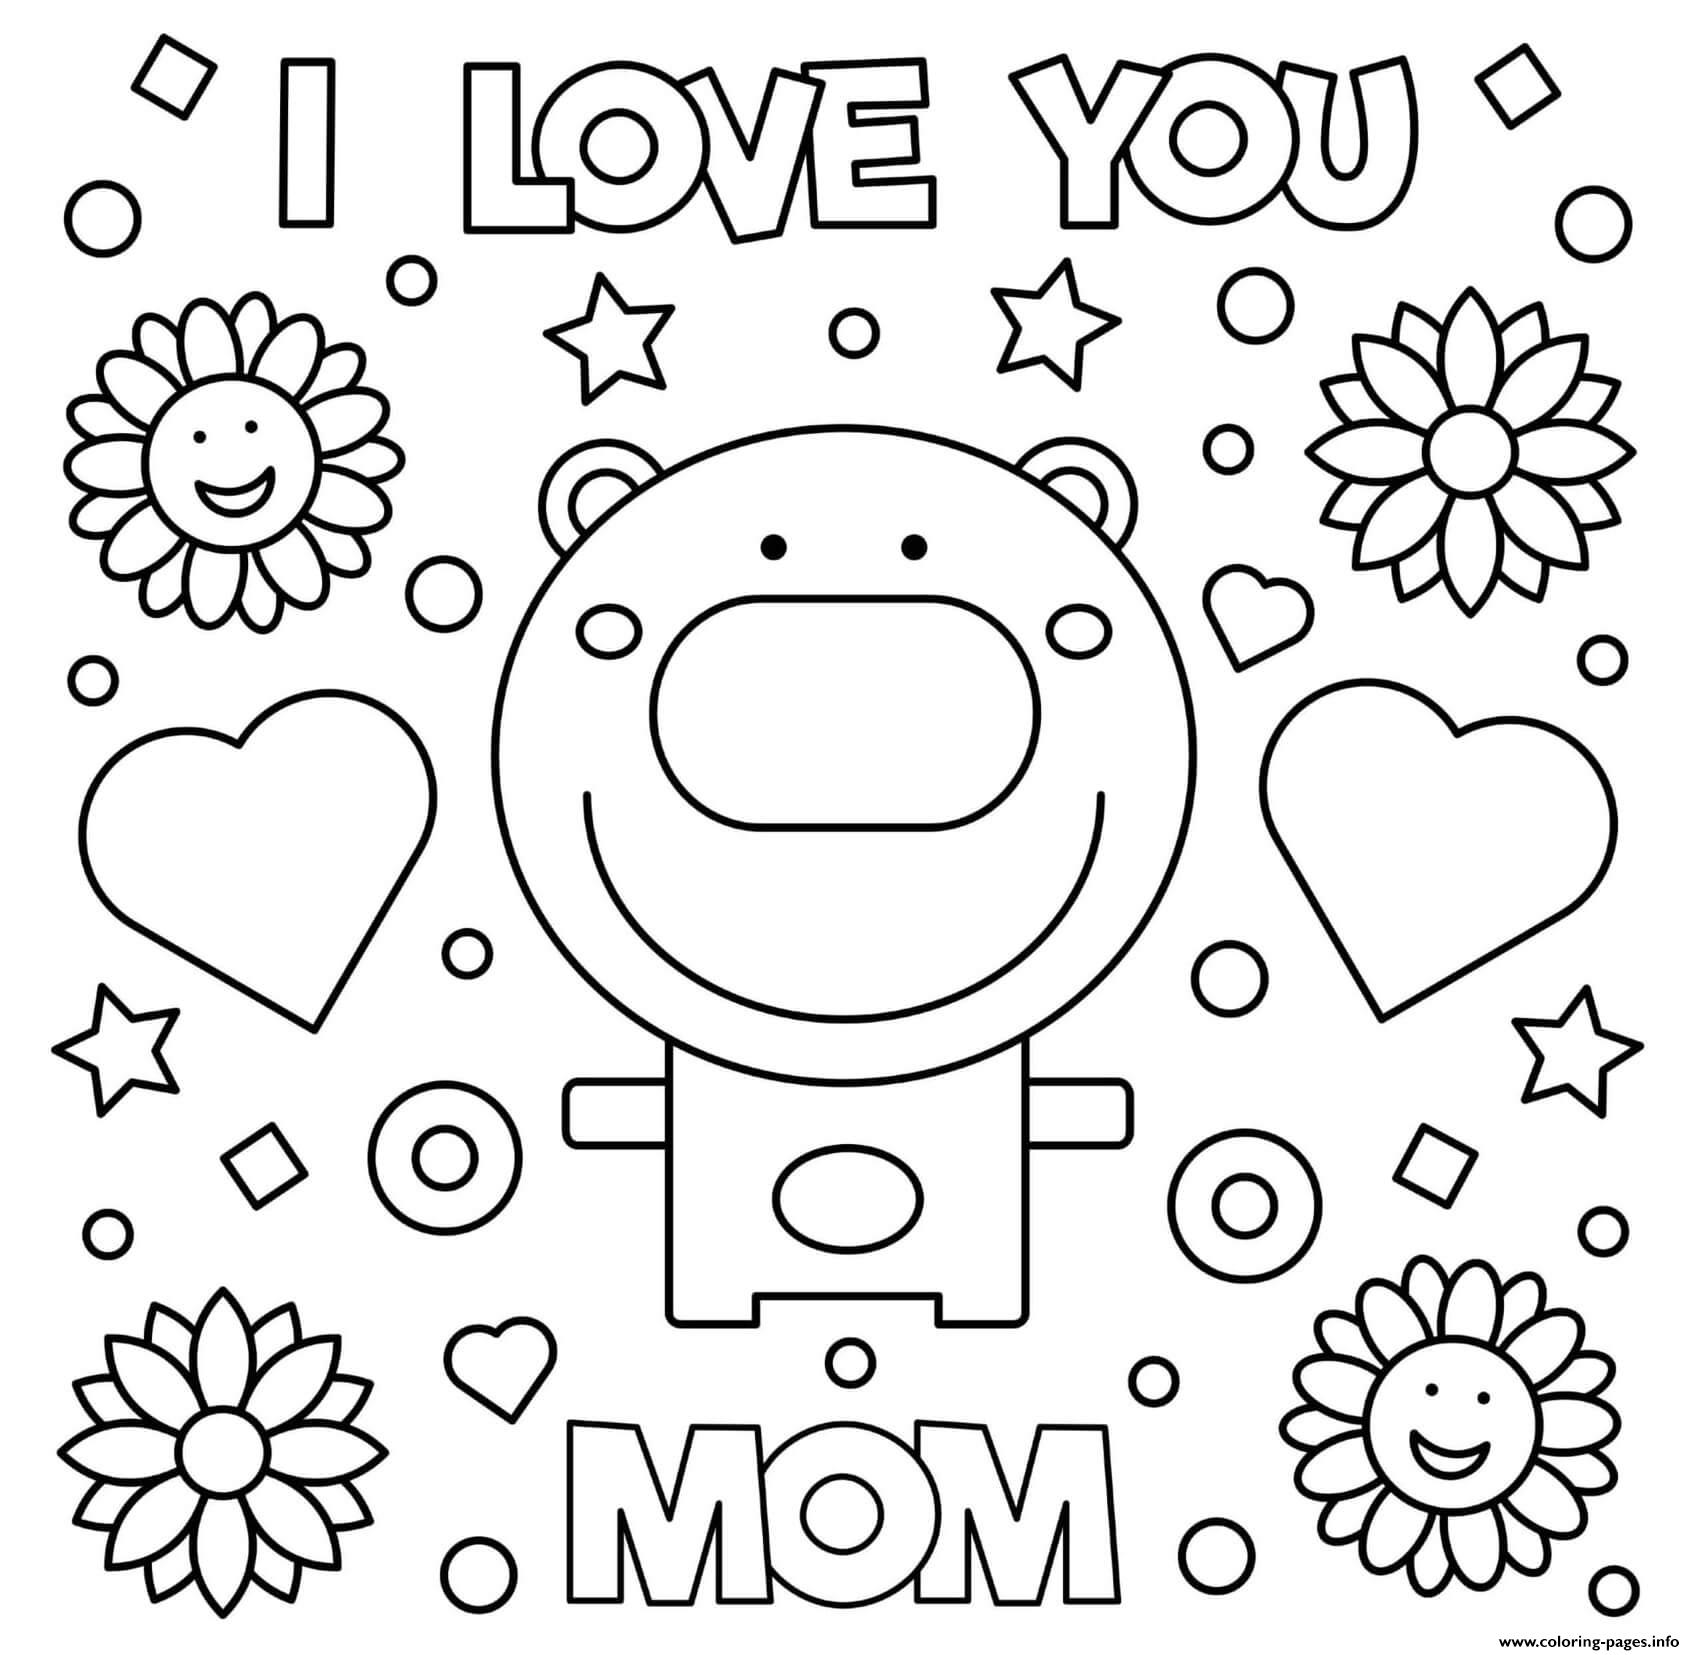 i love u mom coloring pages mothers day i love you mom bear hearts flowers coloring coloring pages mom love u i